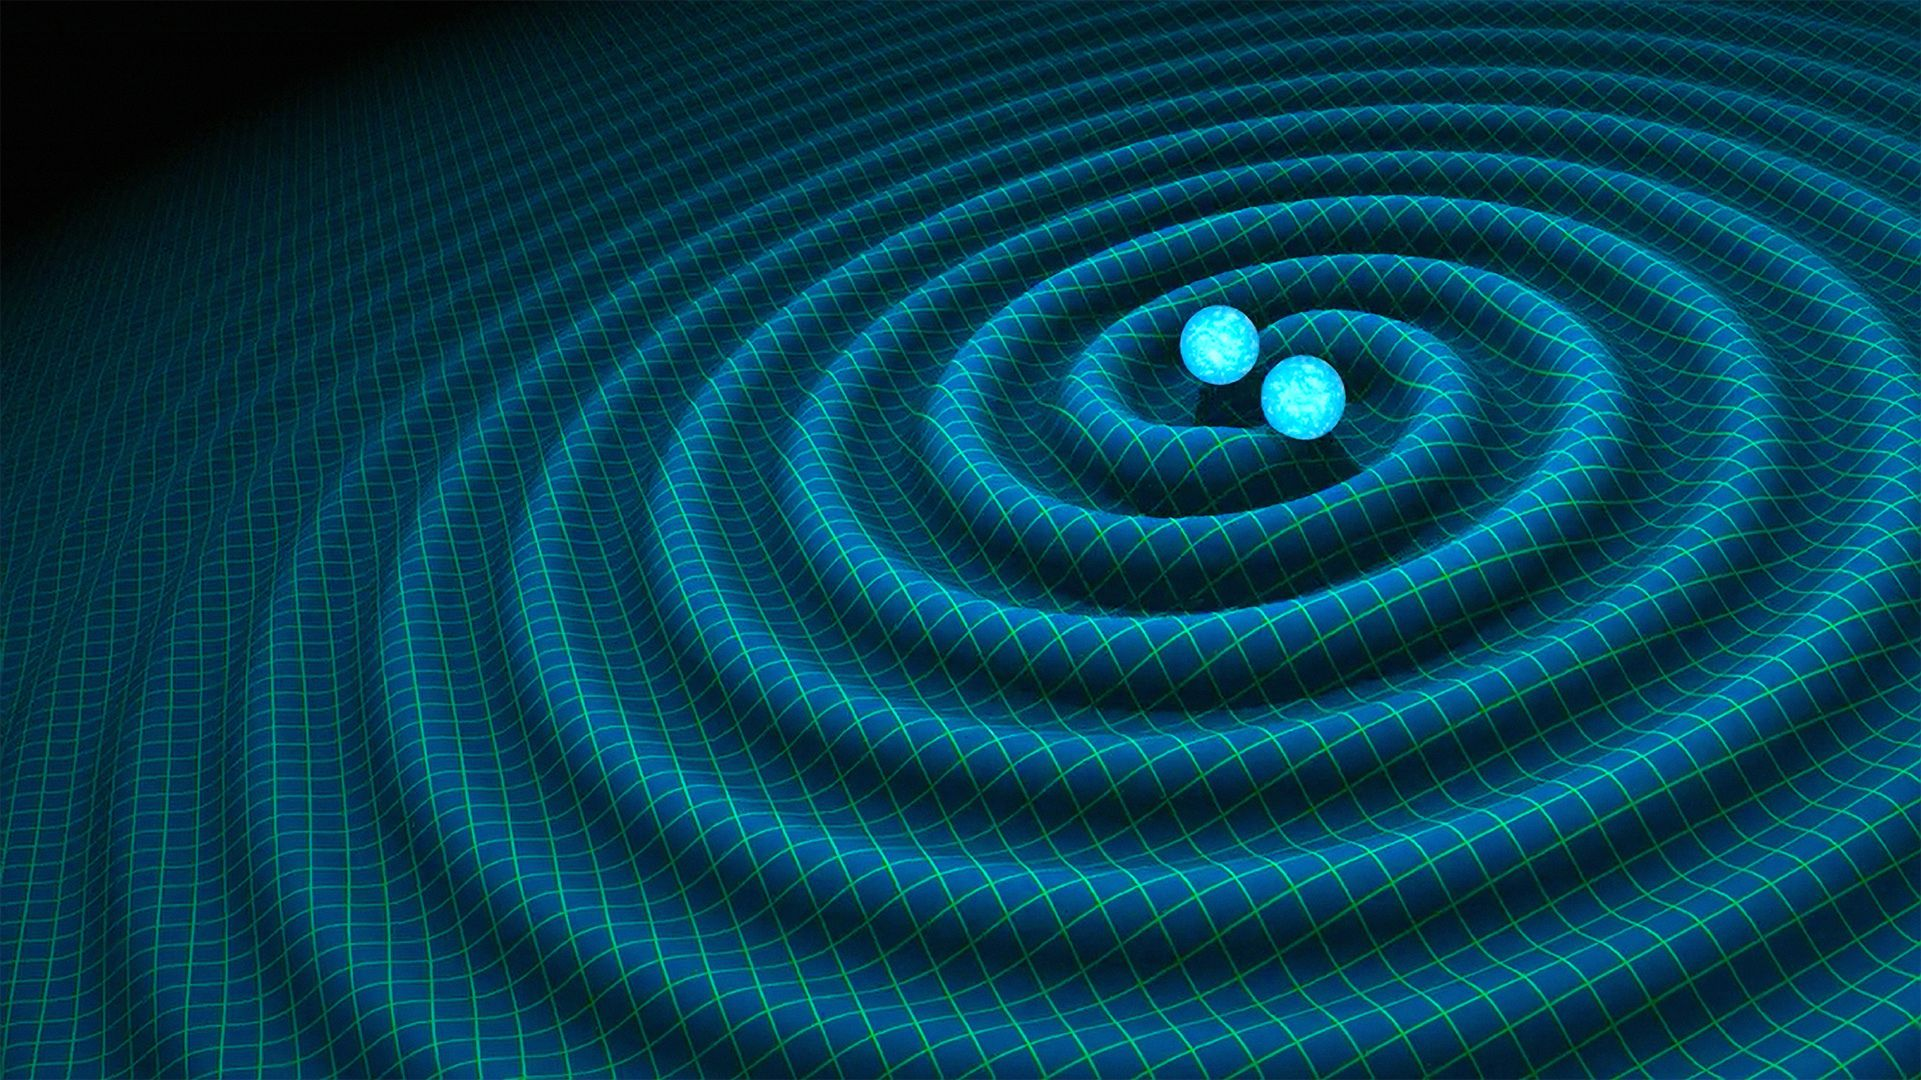 R. Hurt  Caltech-JPL An artist's impression of gravitational waves generated by binary neutron stars